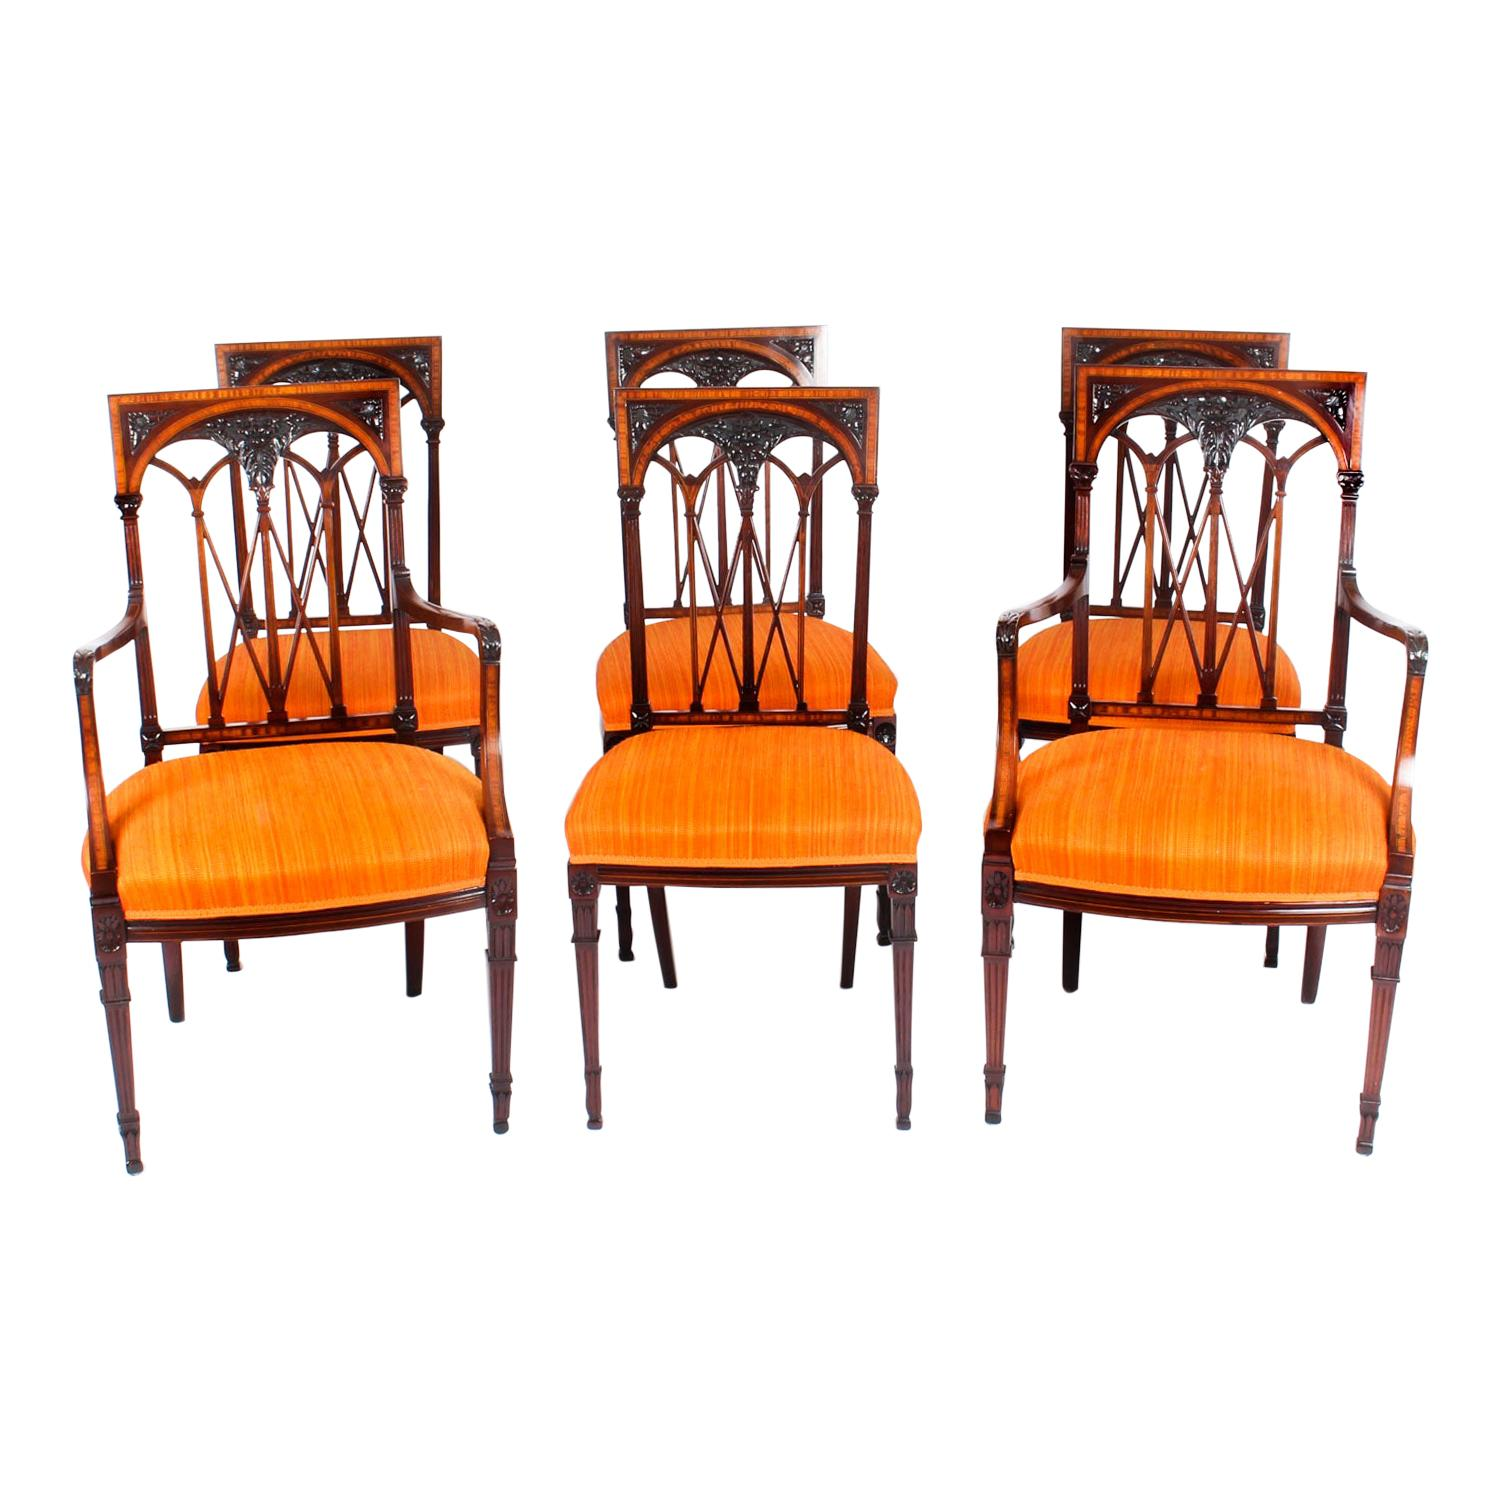 Early 20th Century Set 6 Sheraton Revival Mahogany and Satinwood Dining Chairs